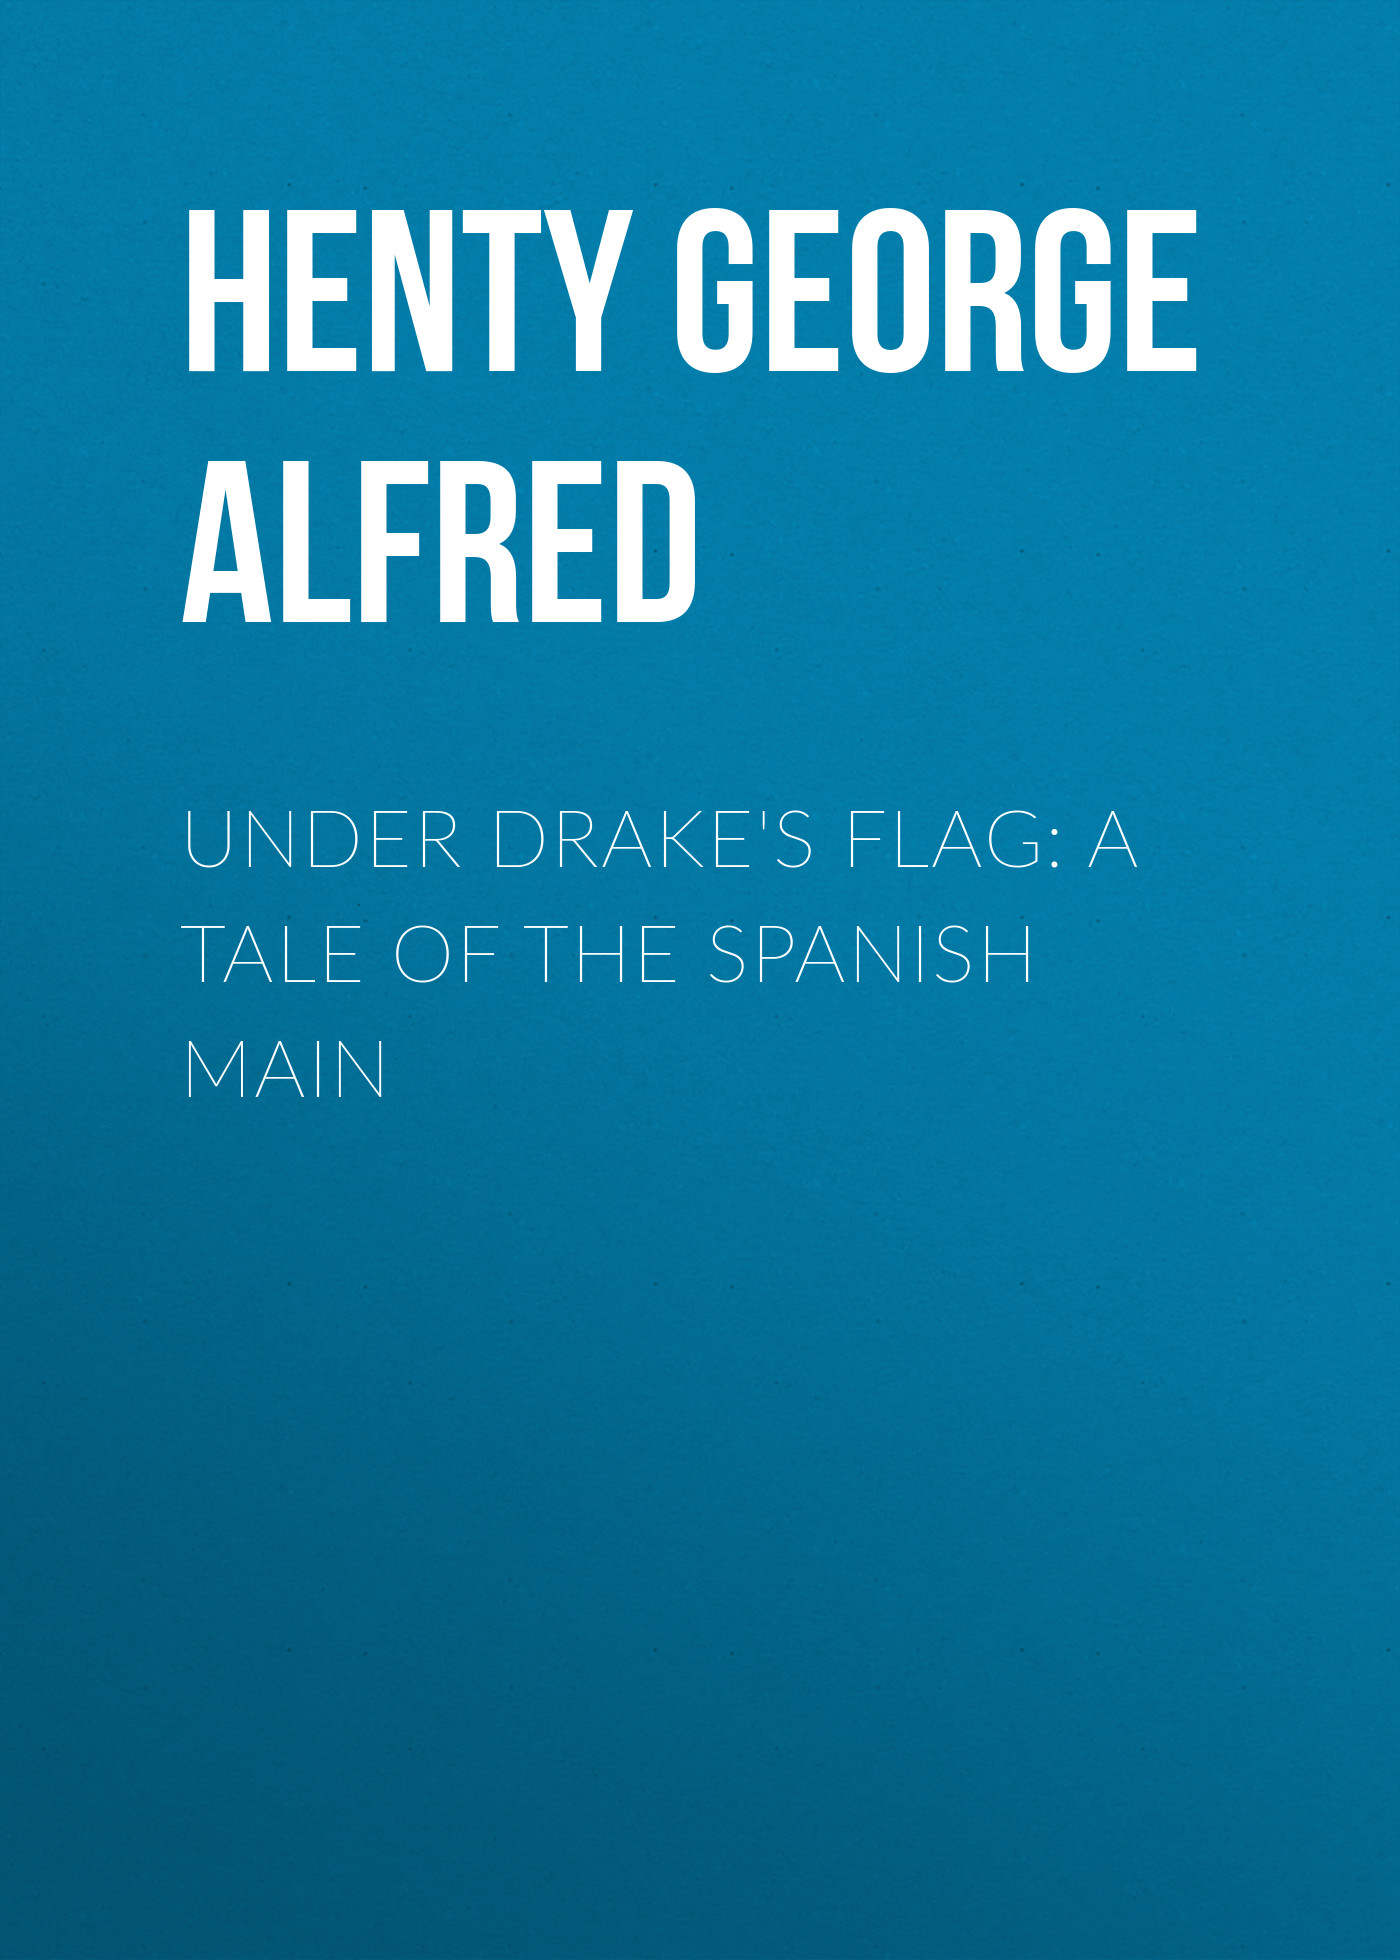 Henty George Alfred Under Drake's Flag: A Tale of the Spanish Main